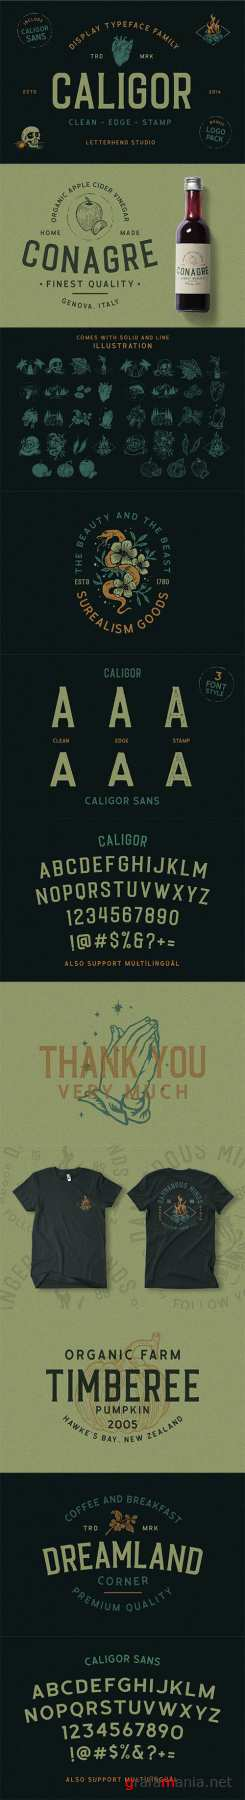 CALIGOR - Display Typeface 2785057